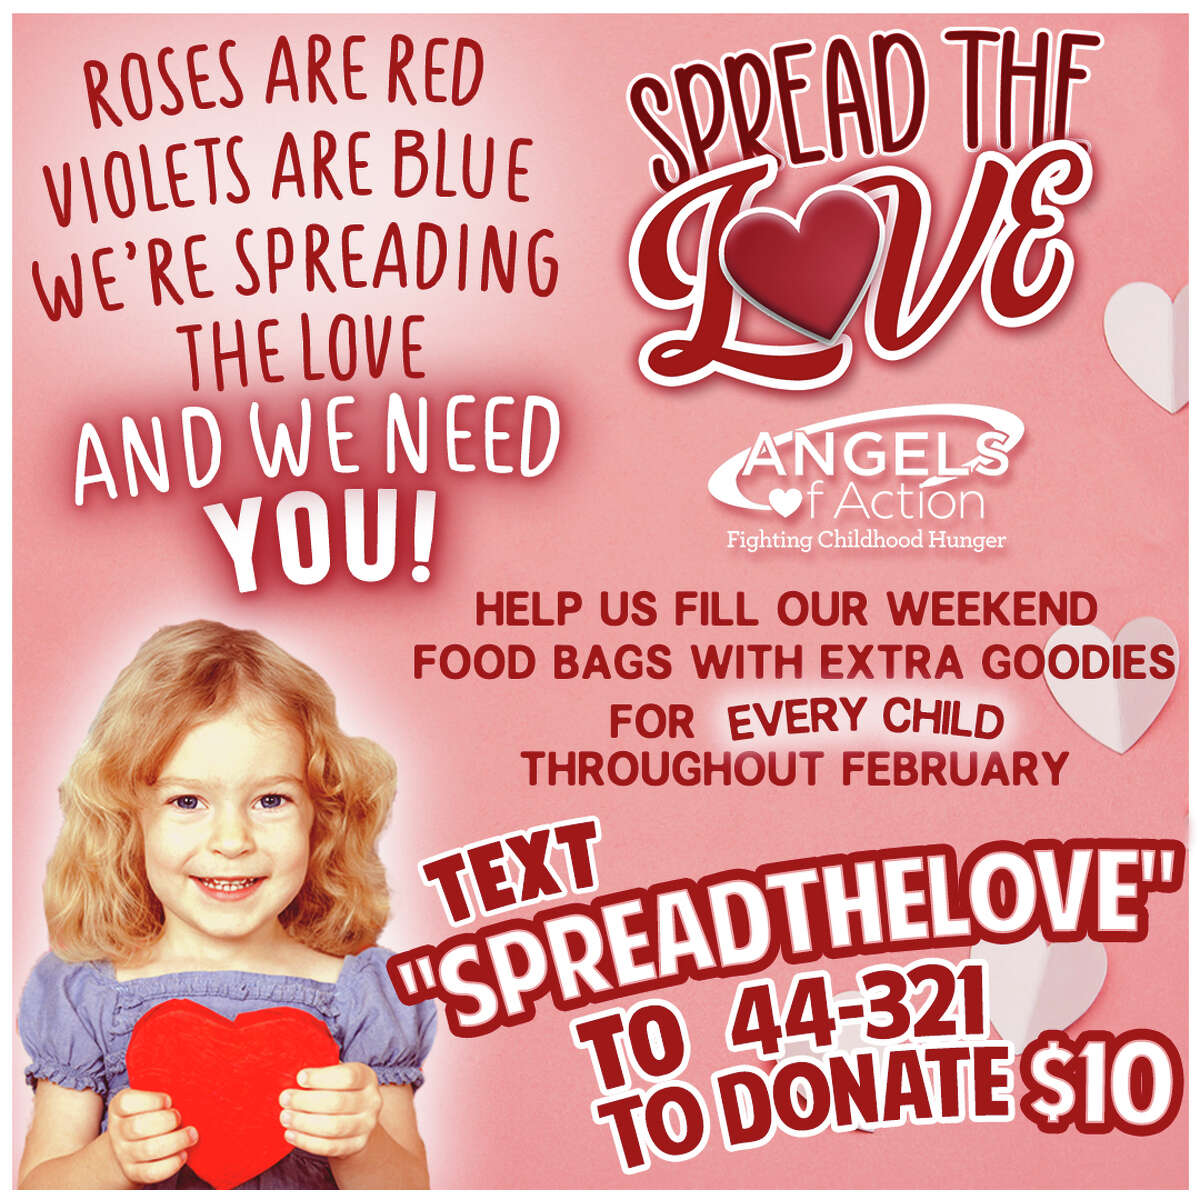 Starting in February, Angels of Action will be addiing some extra goodies to their food bags for area youth.